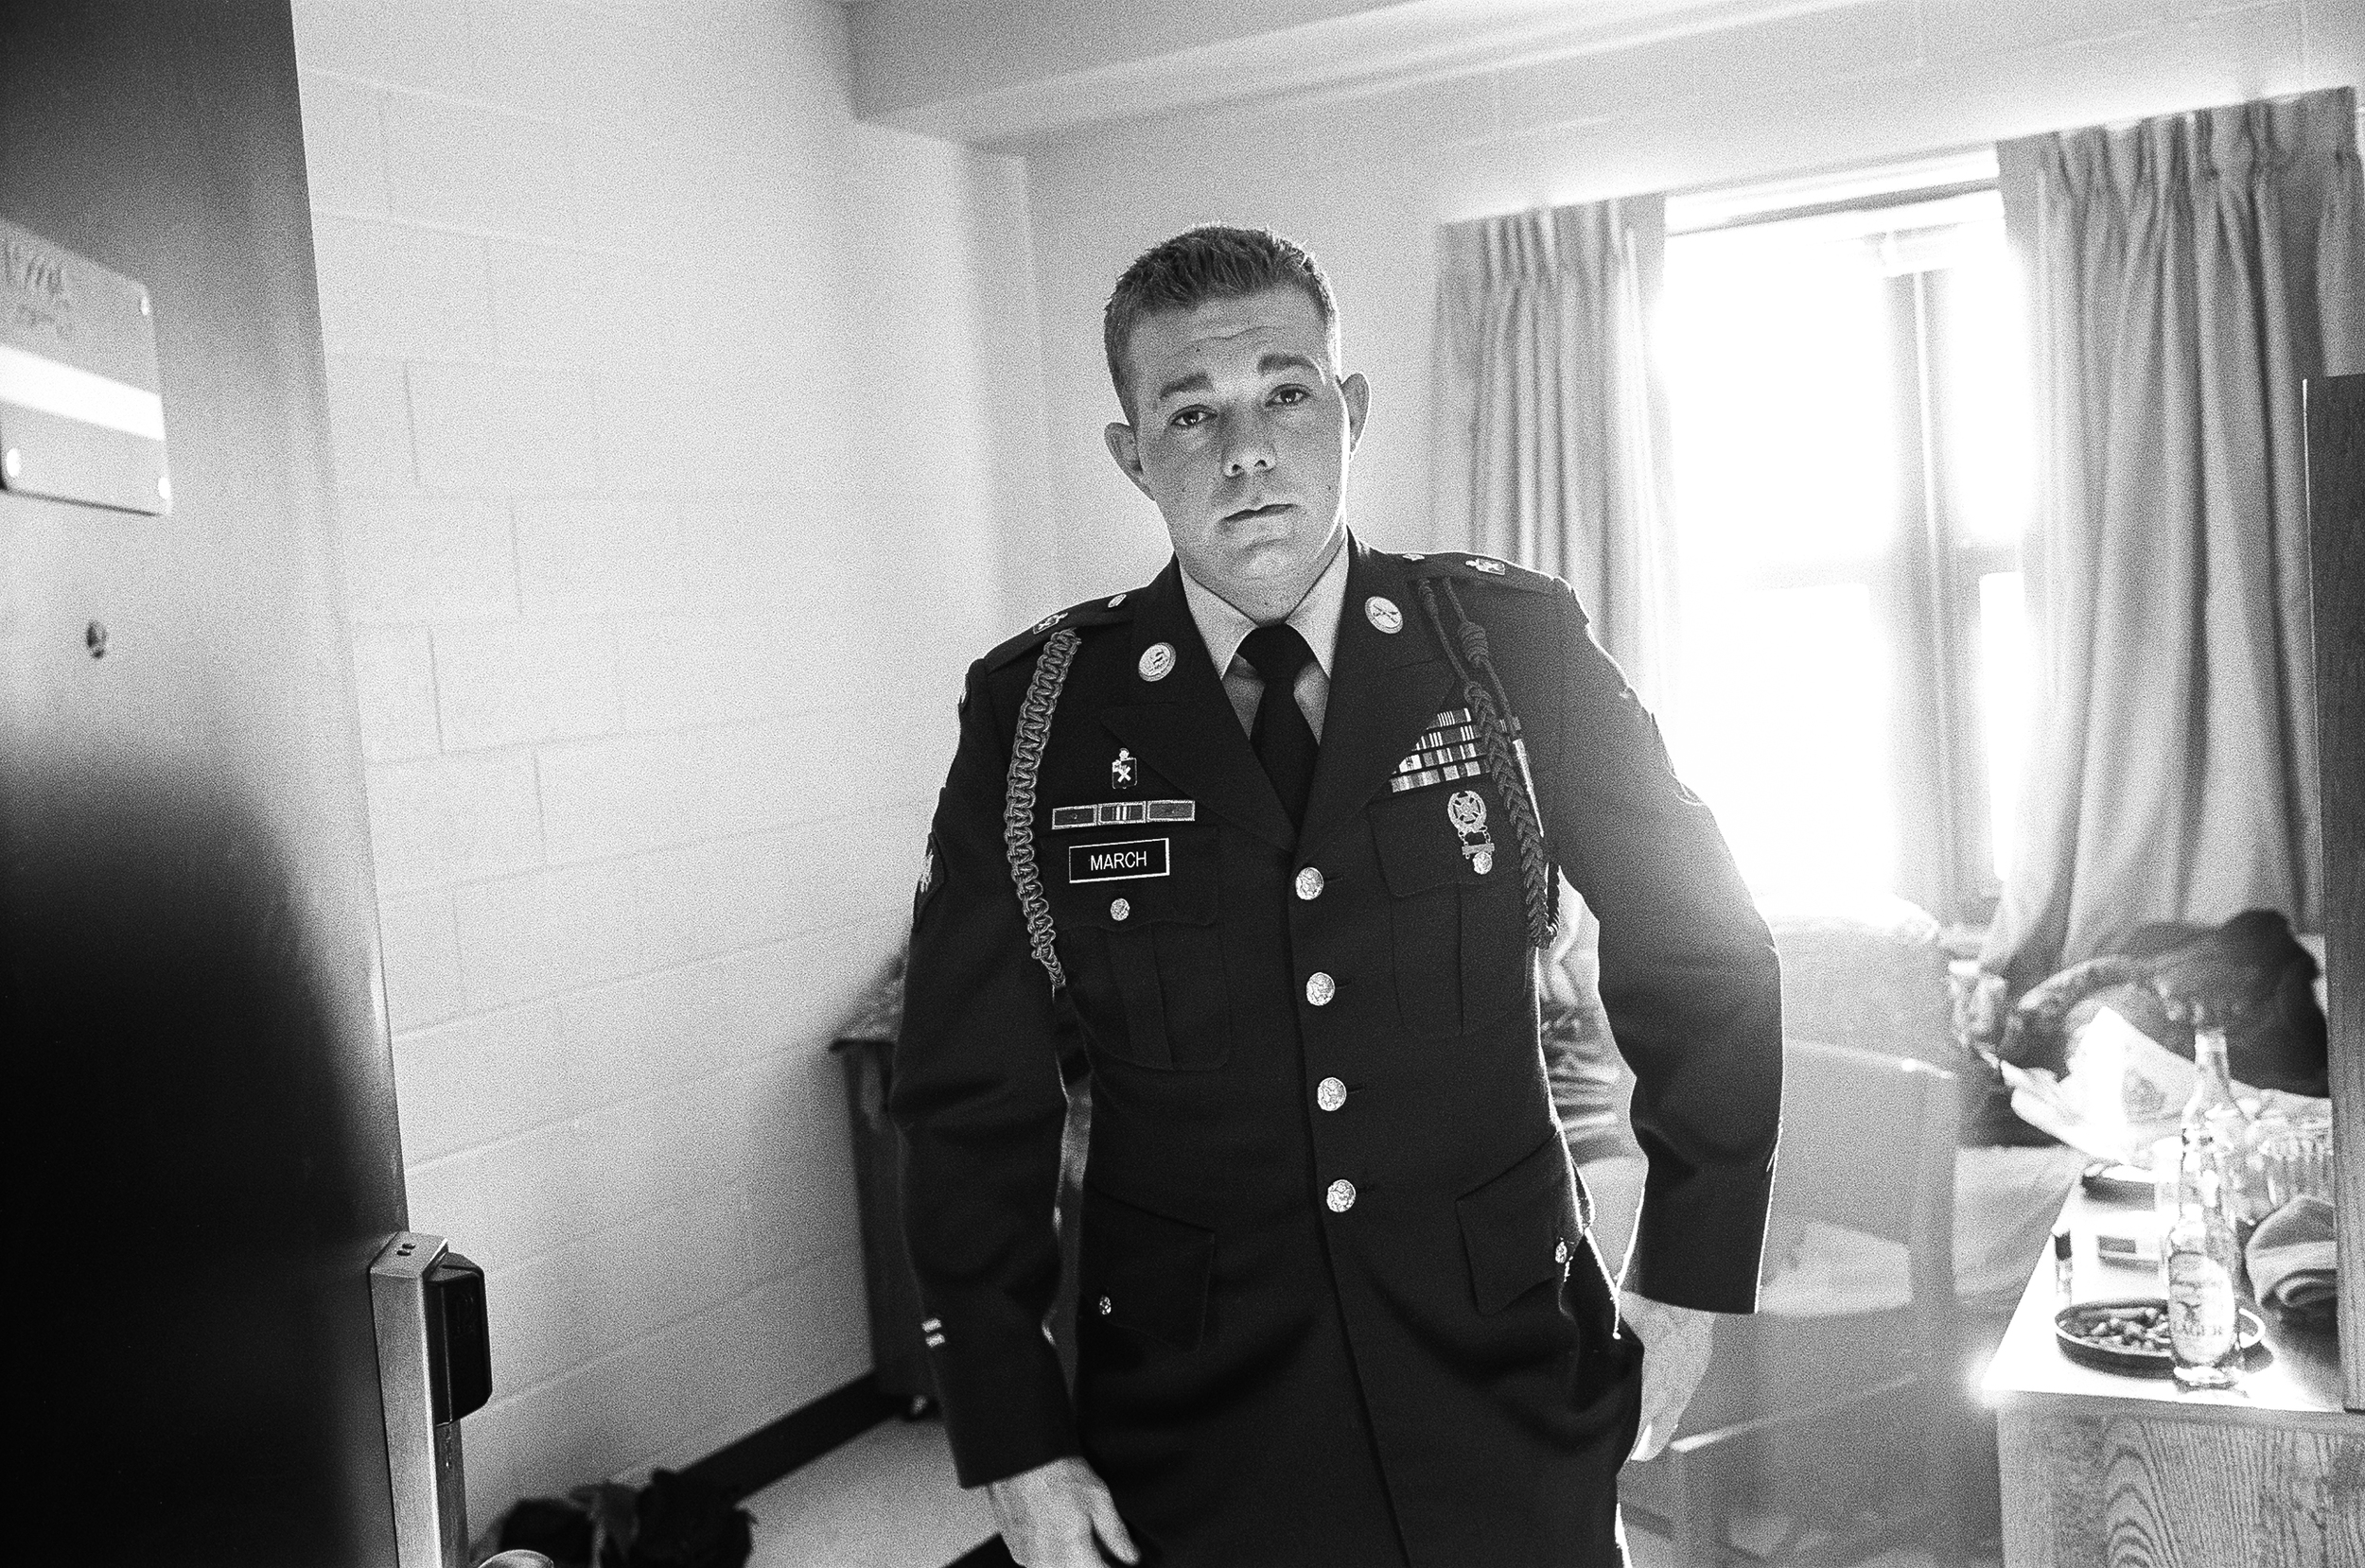 SPC James March wears his Class A uniform before going home on leave, January, 2010. After serving in Afghanistan March suffered from depression and in February 2015, at age 31, he took his own life in Painesville, Ohio. March loved animals, music, and spending time with his brothers.